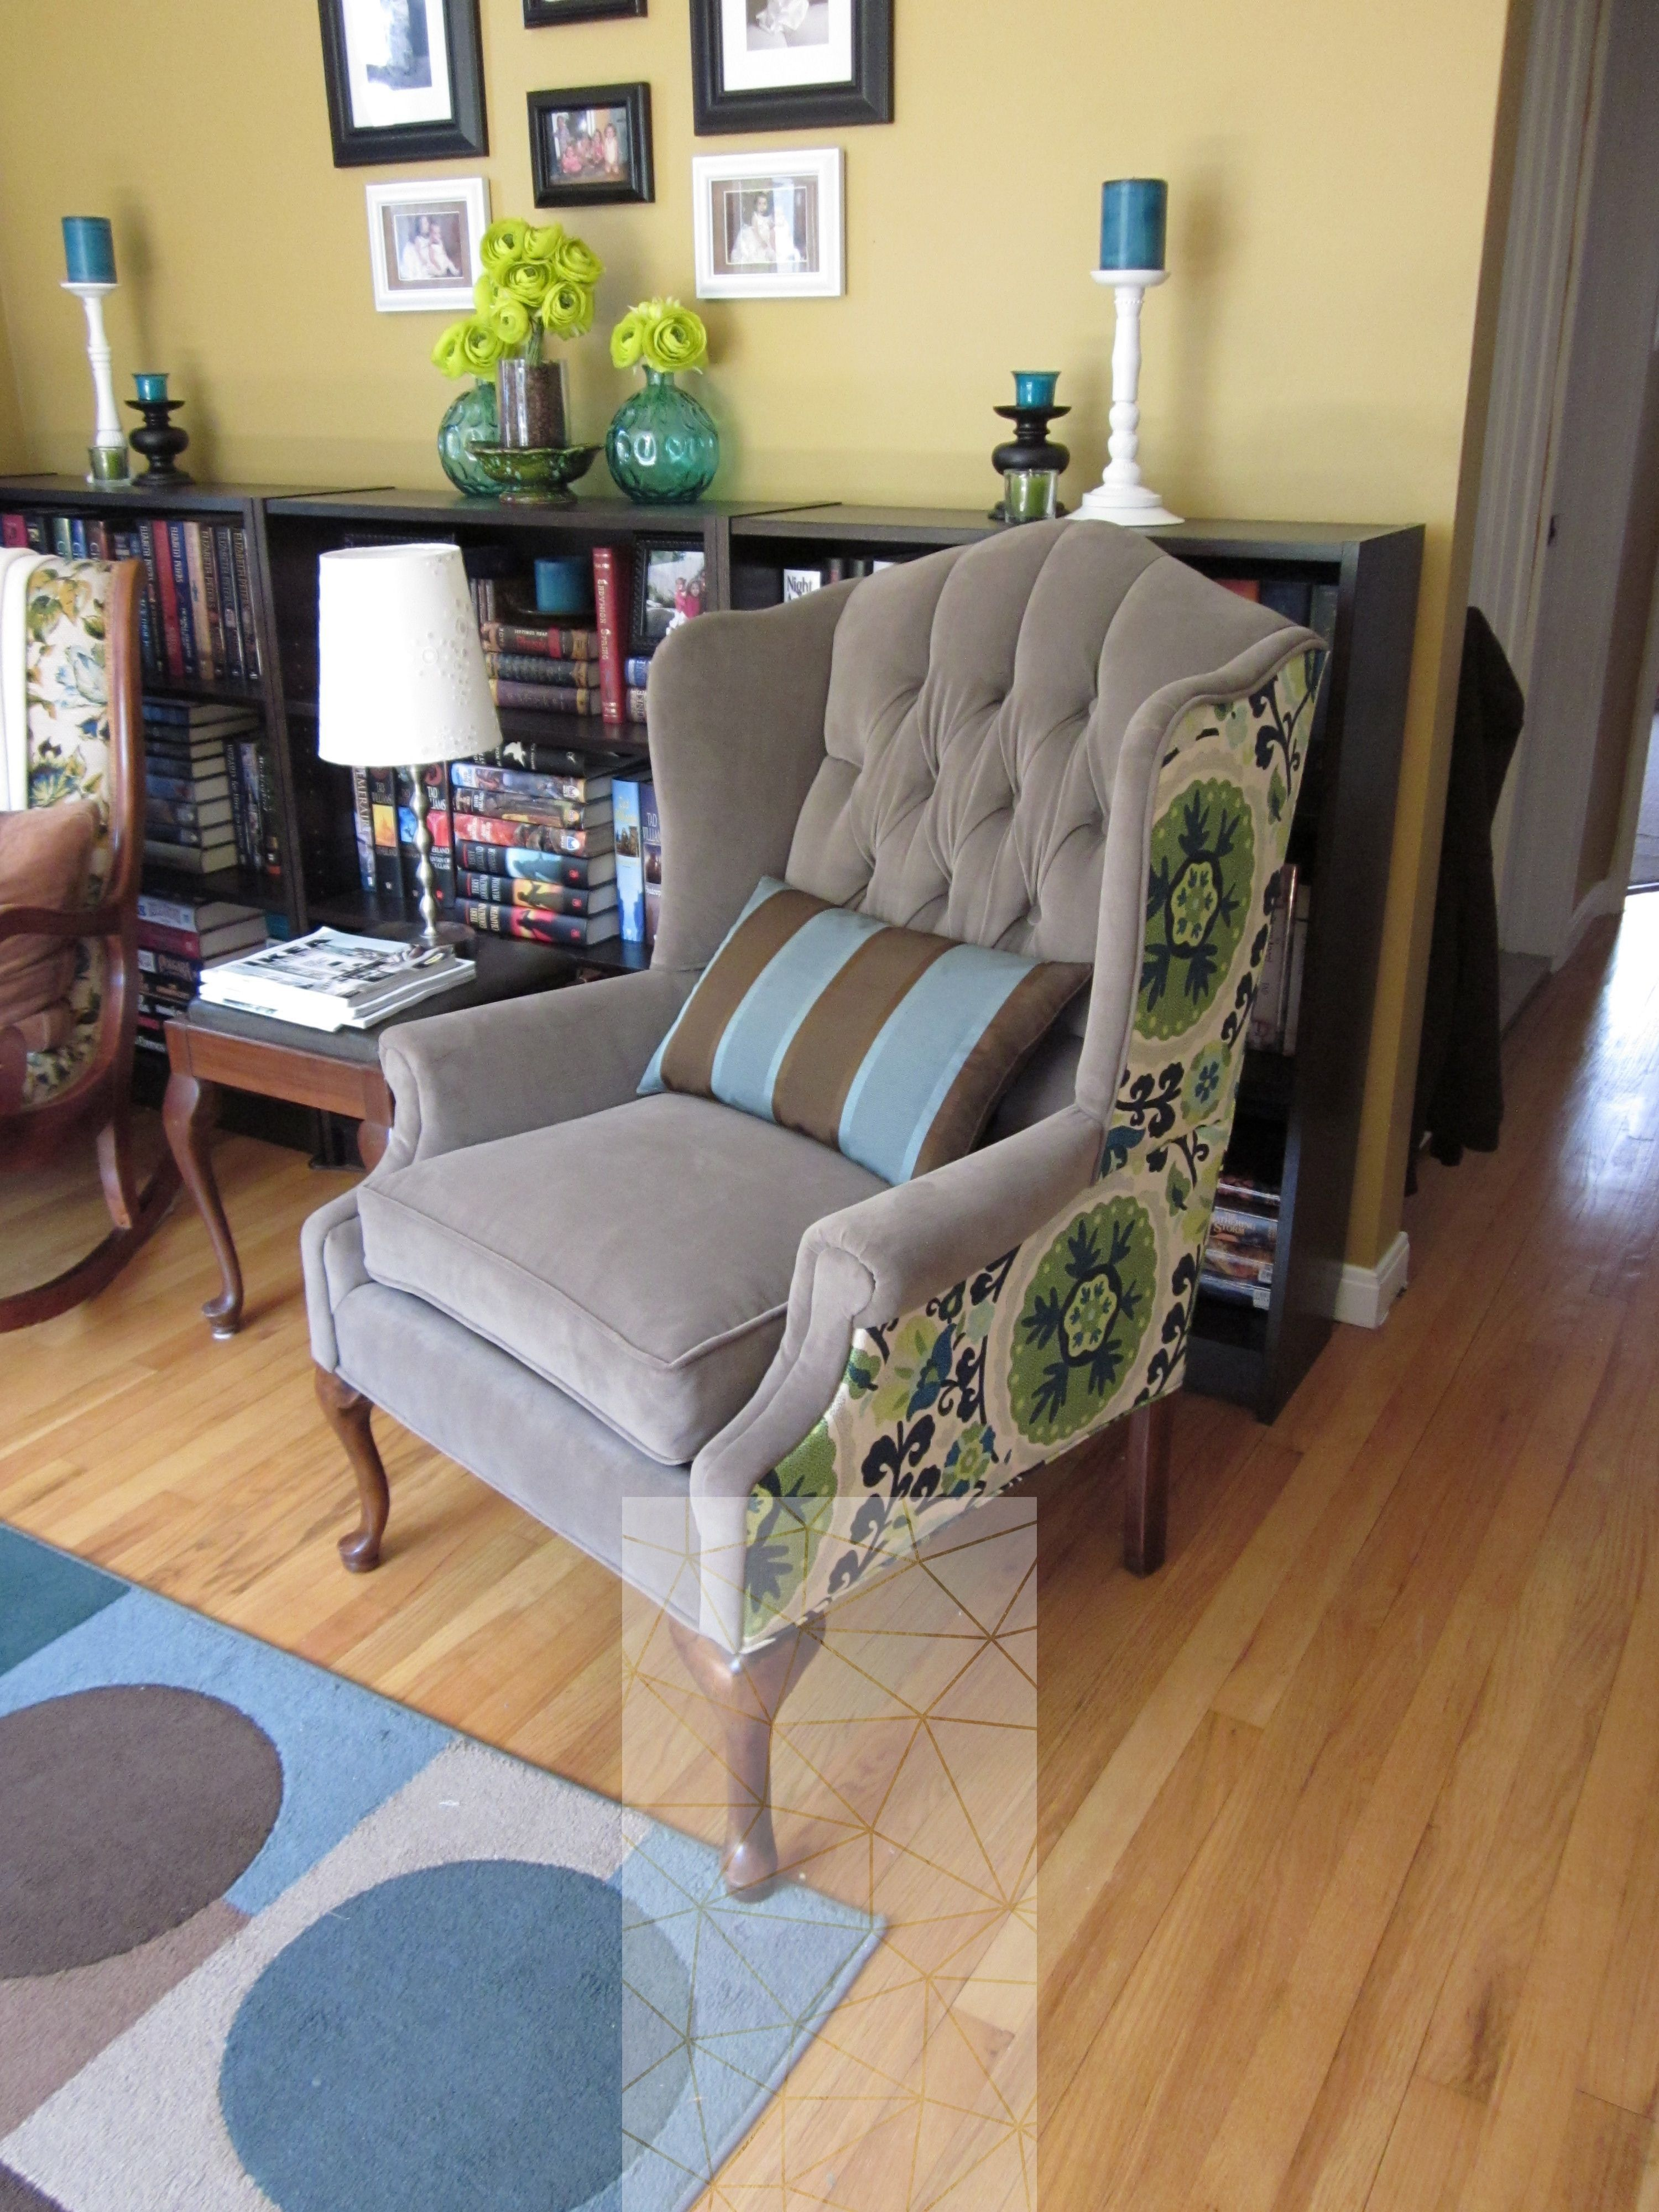 15 Unearthly Upholstery Fabric Leather Ideas Living Room Upholstery Furniture Upholstery Armchair